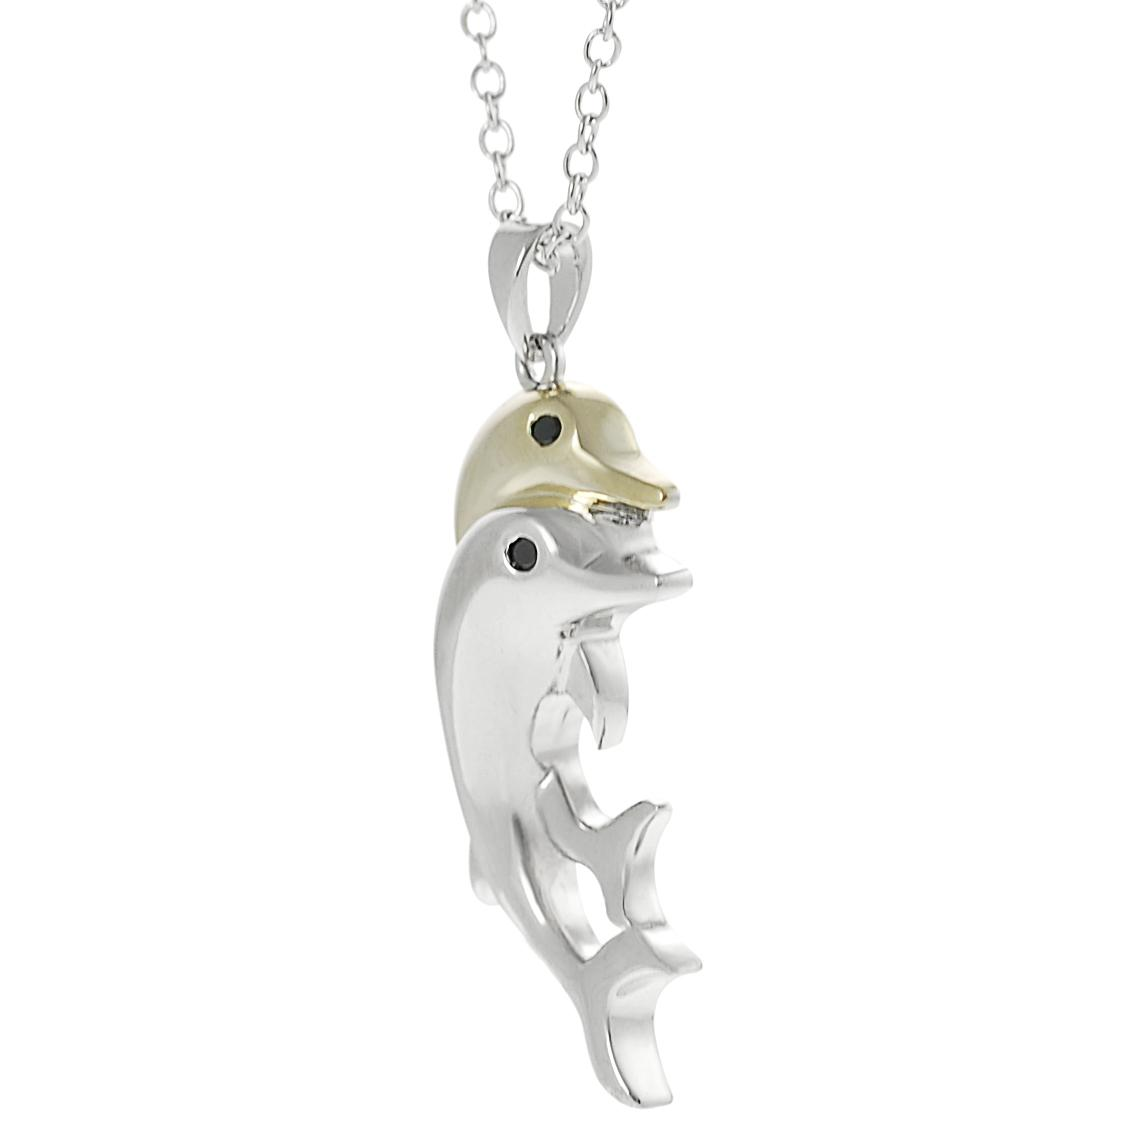 Journee Collection Two-tone Black CZ Dolphin Necklace - Thumbnail 1